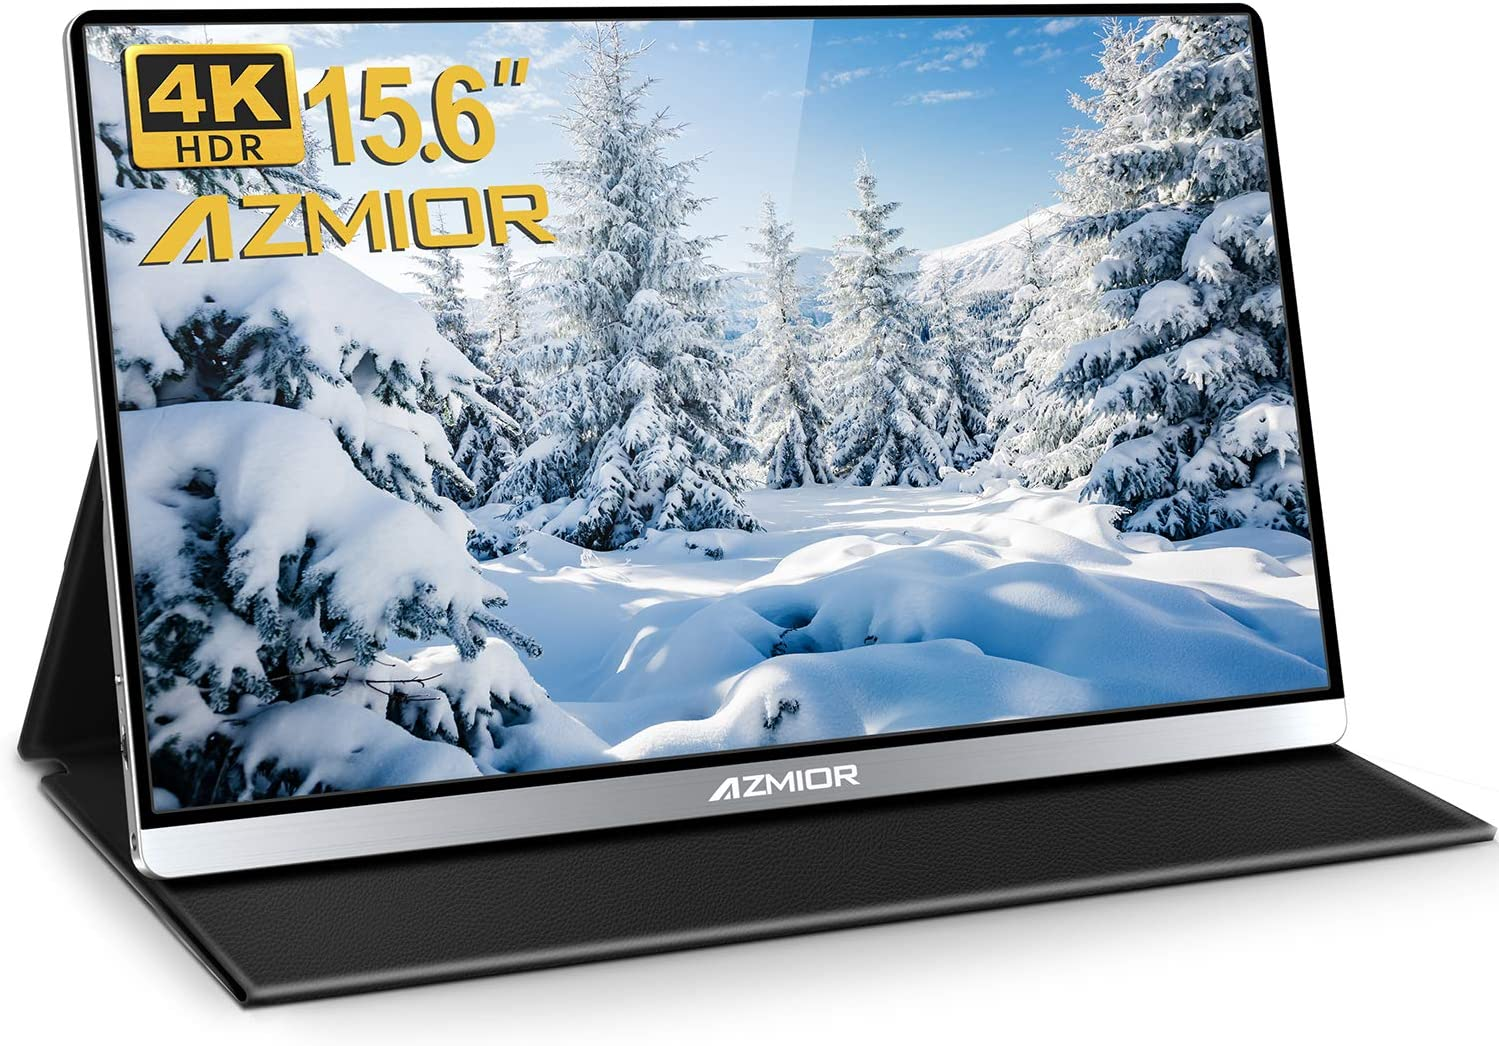 4K Portable Monitor - AZMIOR 15.6 Inch UHD 3840x2160 IPS 100% sRGB 60Hz, HDR Freesync Gaming Computer Display with Dual USB C Mini HDMI for Laptop, PC, MAC, Surface, Phone, PS3, PS4, Xbox, Switch